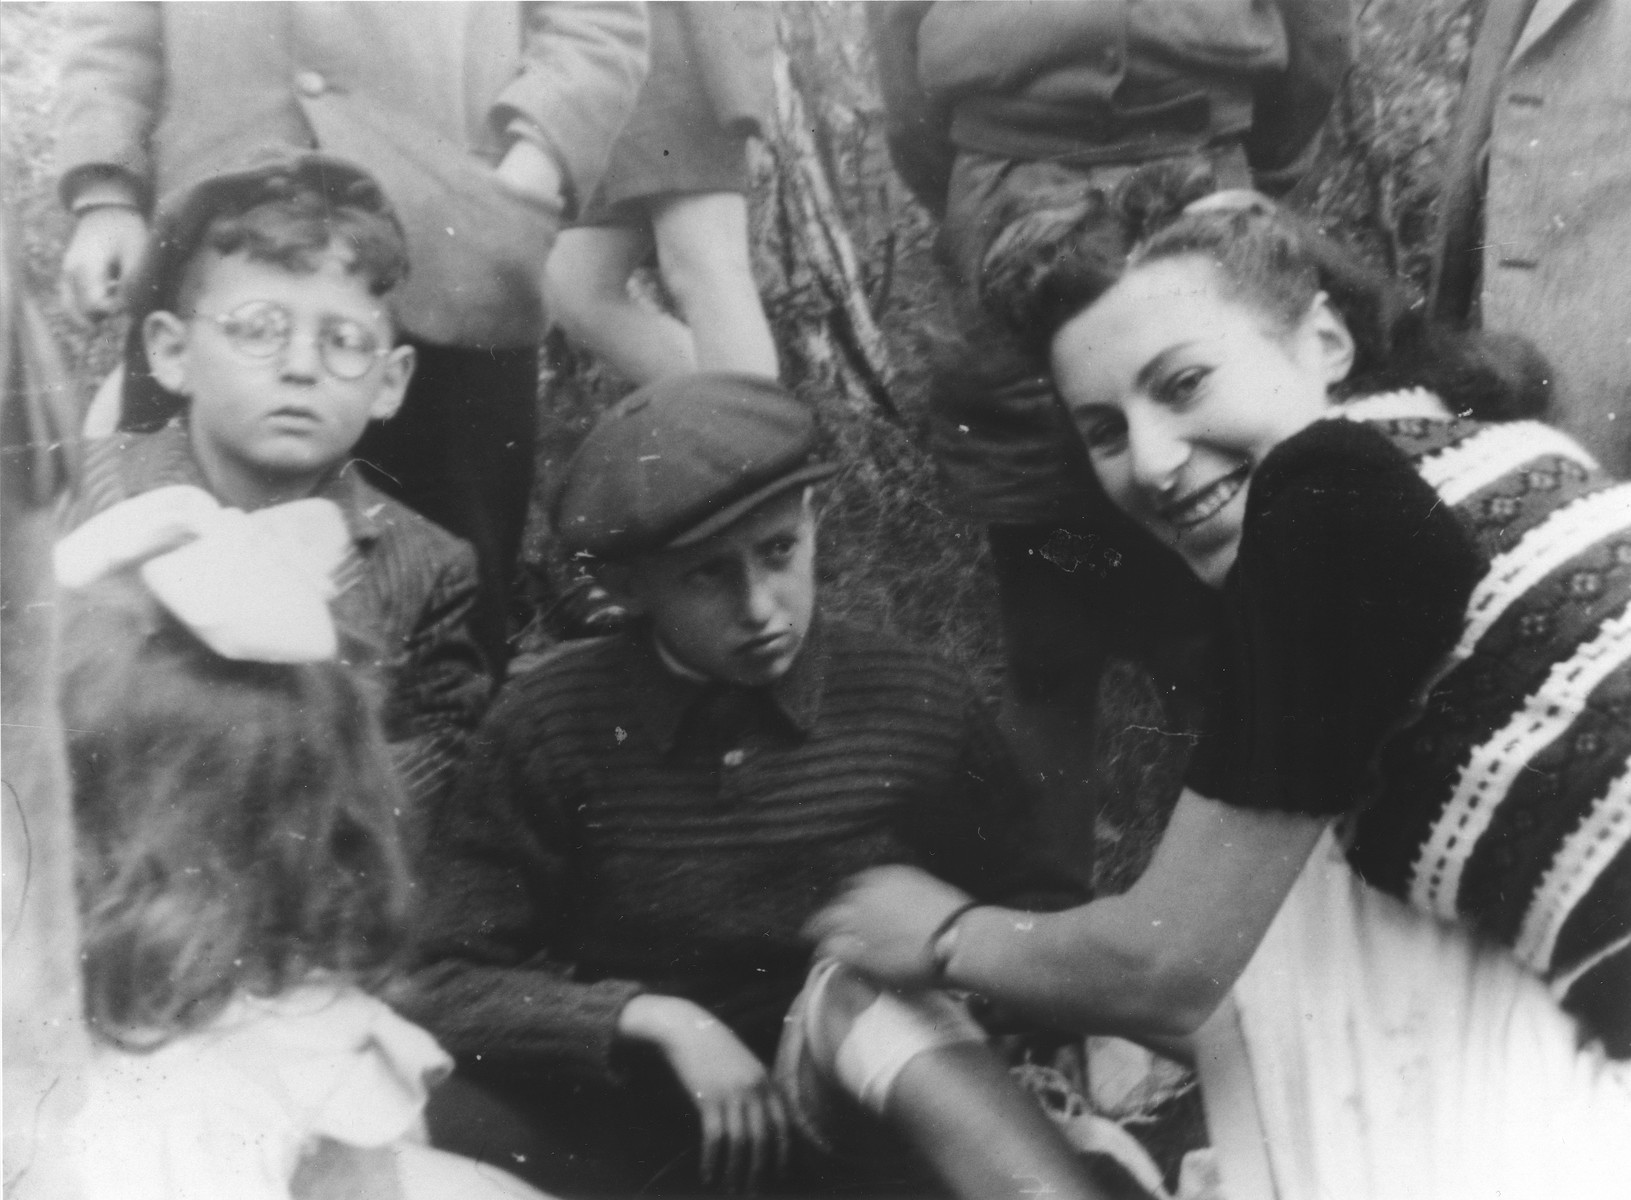 A Red Cross worker bandages a child's leg in the Ulm displaced persons camp.  Srulek Rajs is pictured on the far left.